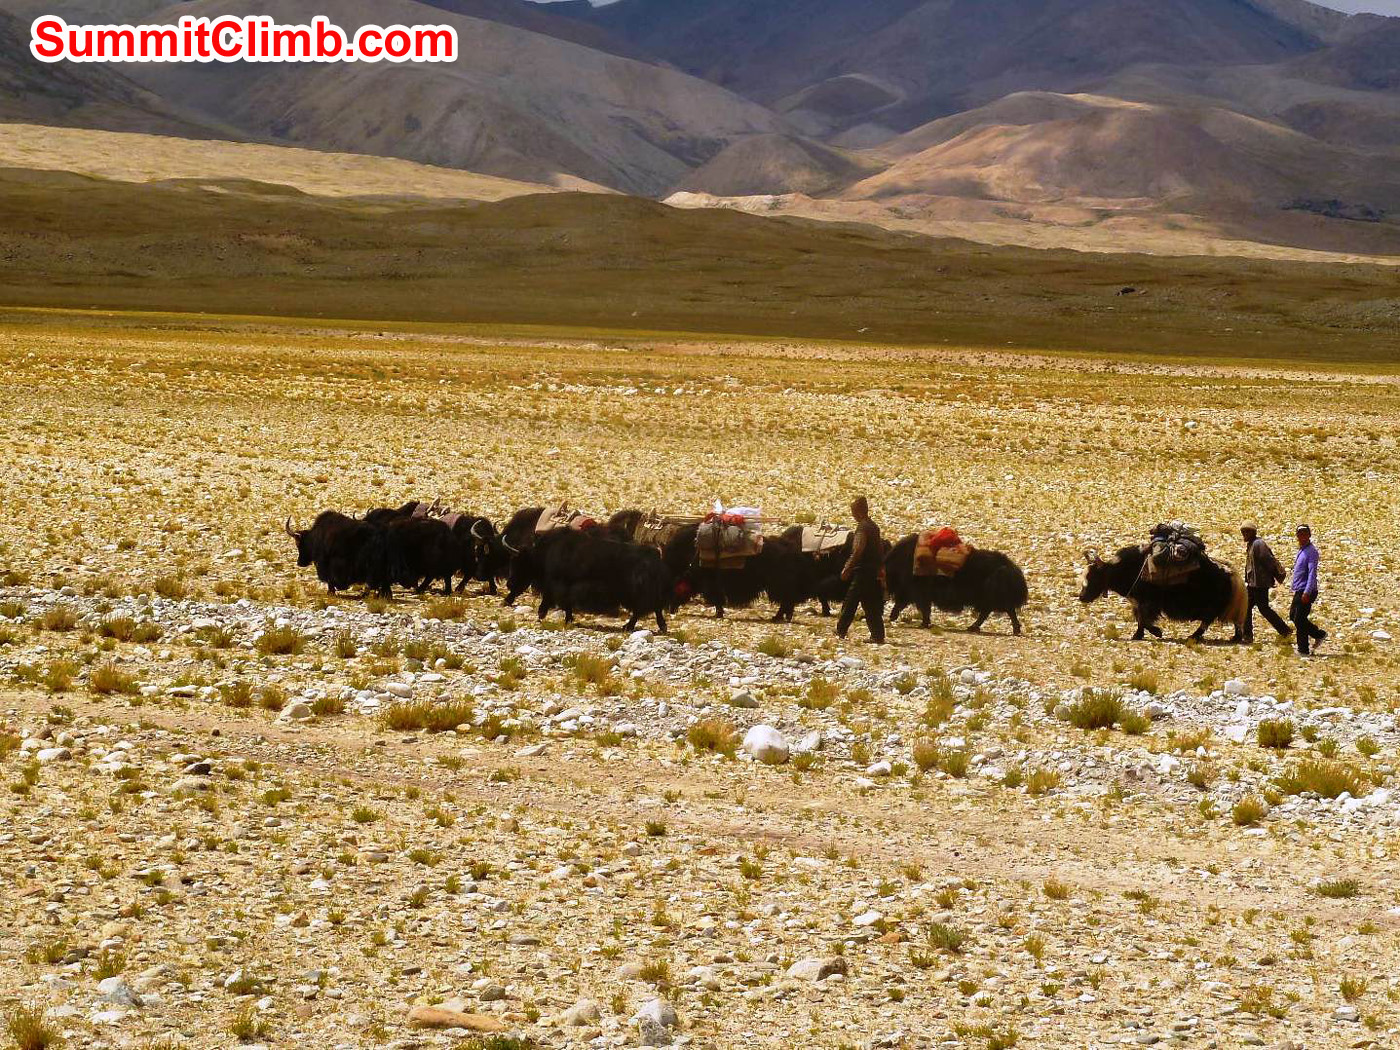 Yak Caravan on the way to Base Camp - Photo by Marina Cortes